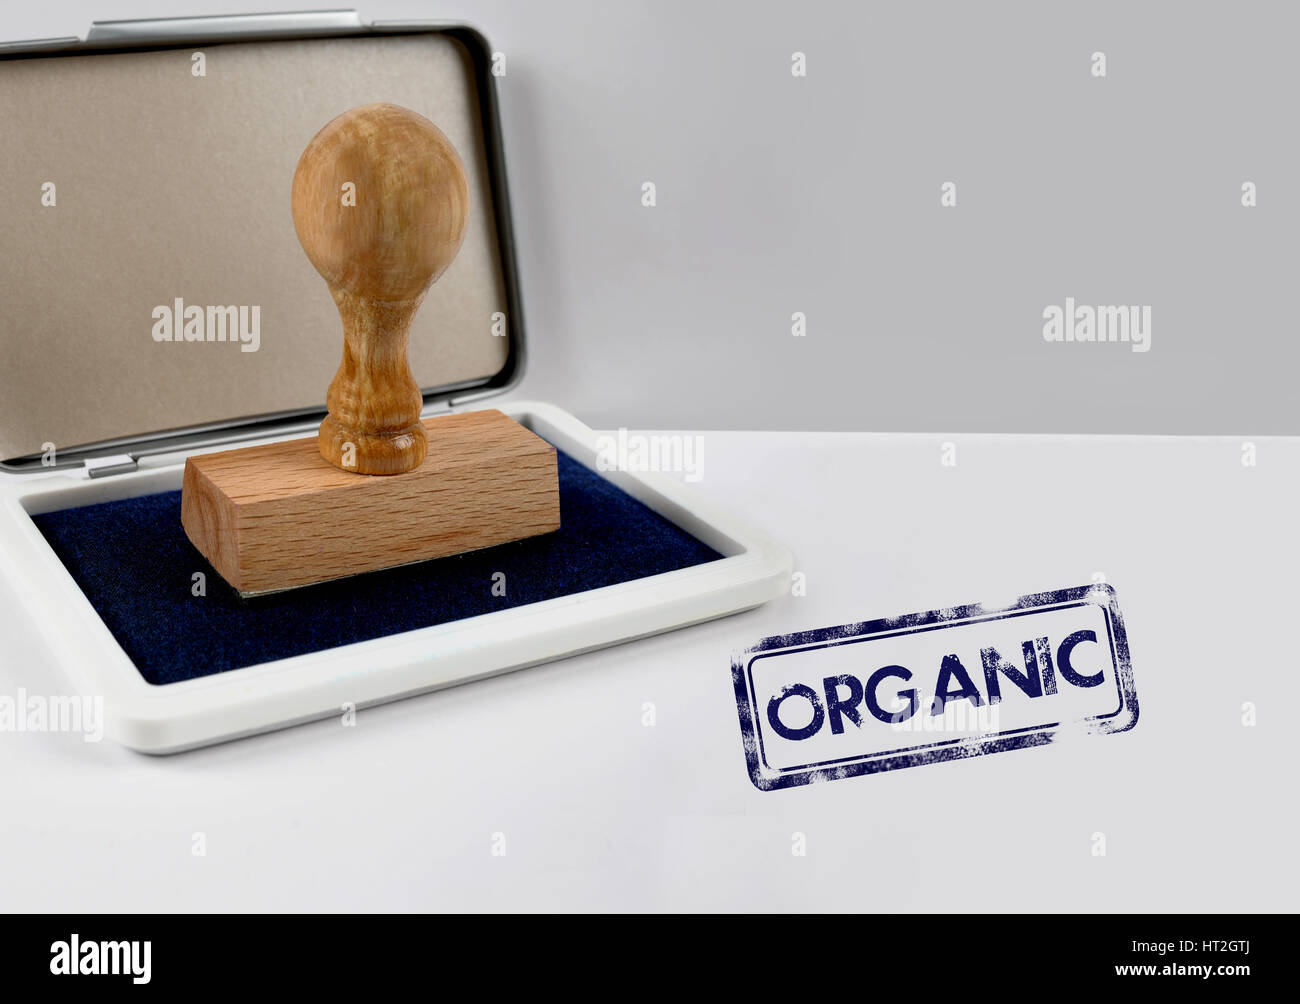 Wooden stamp on a desk ORGANIC Stock Photo